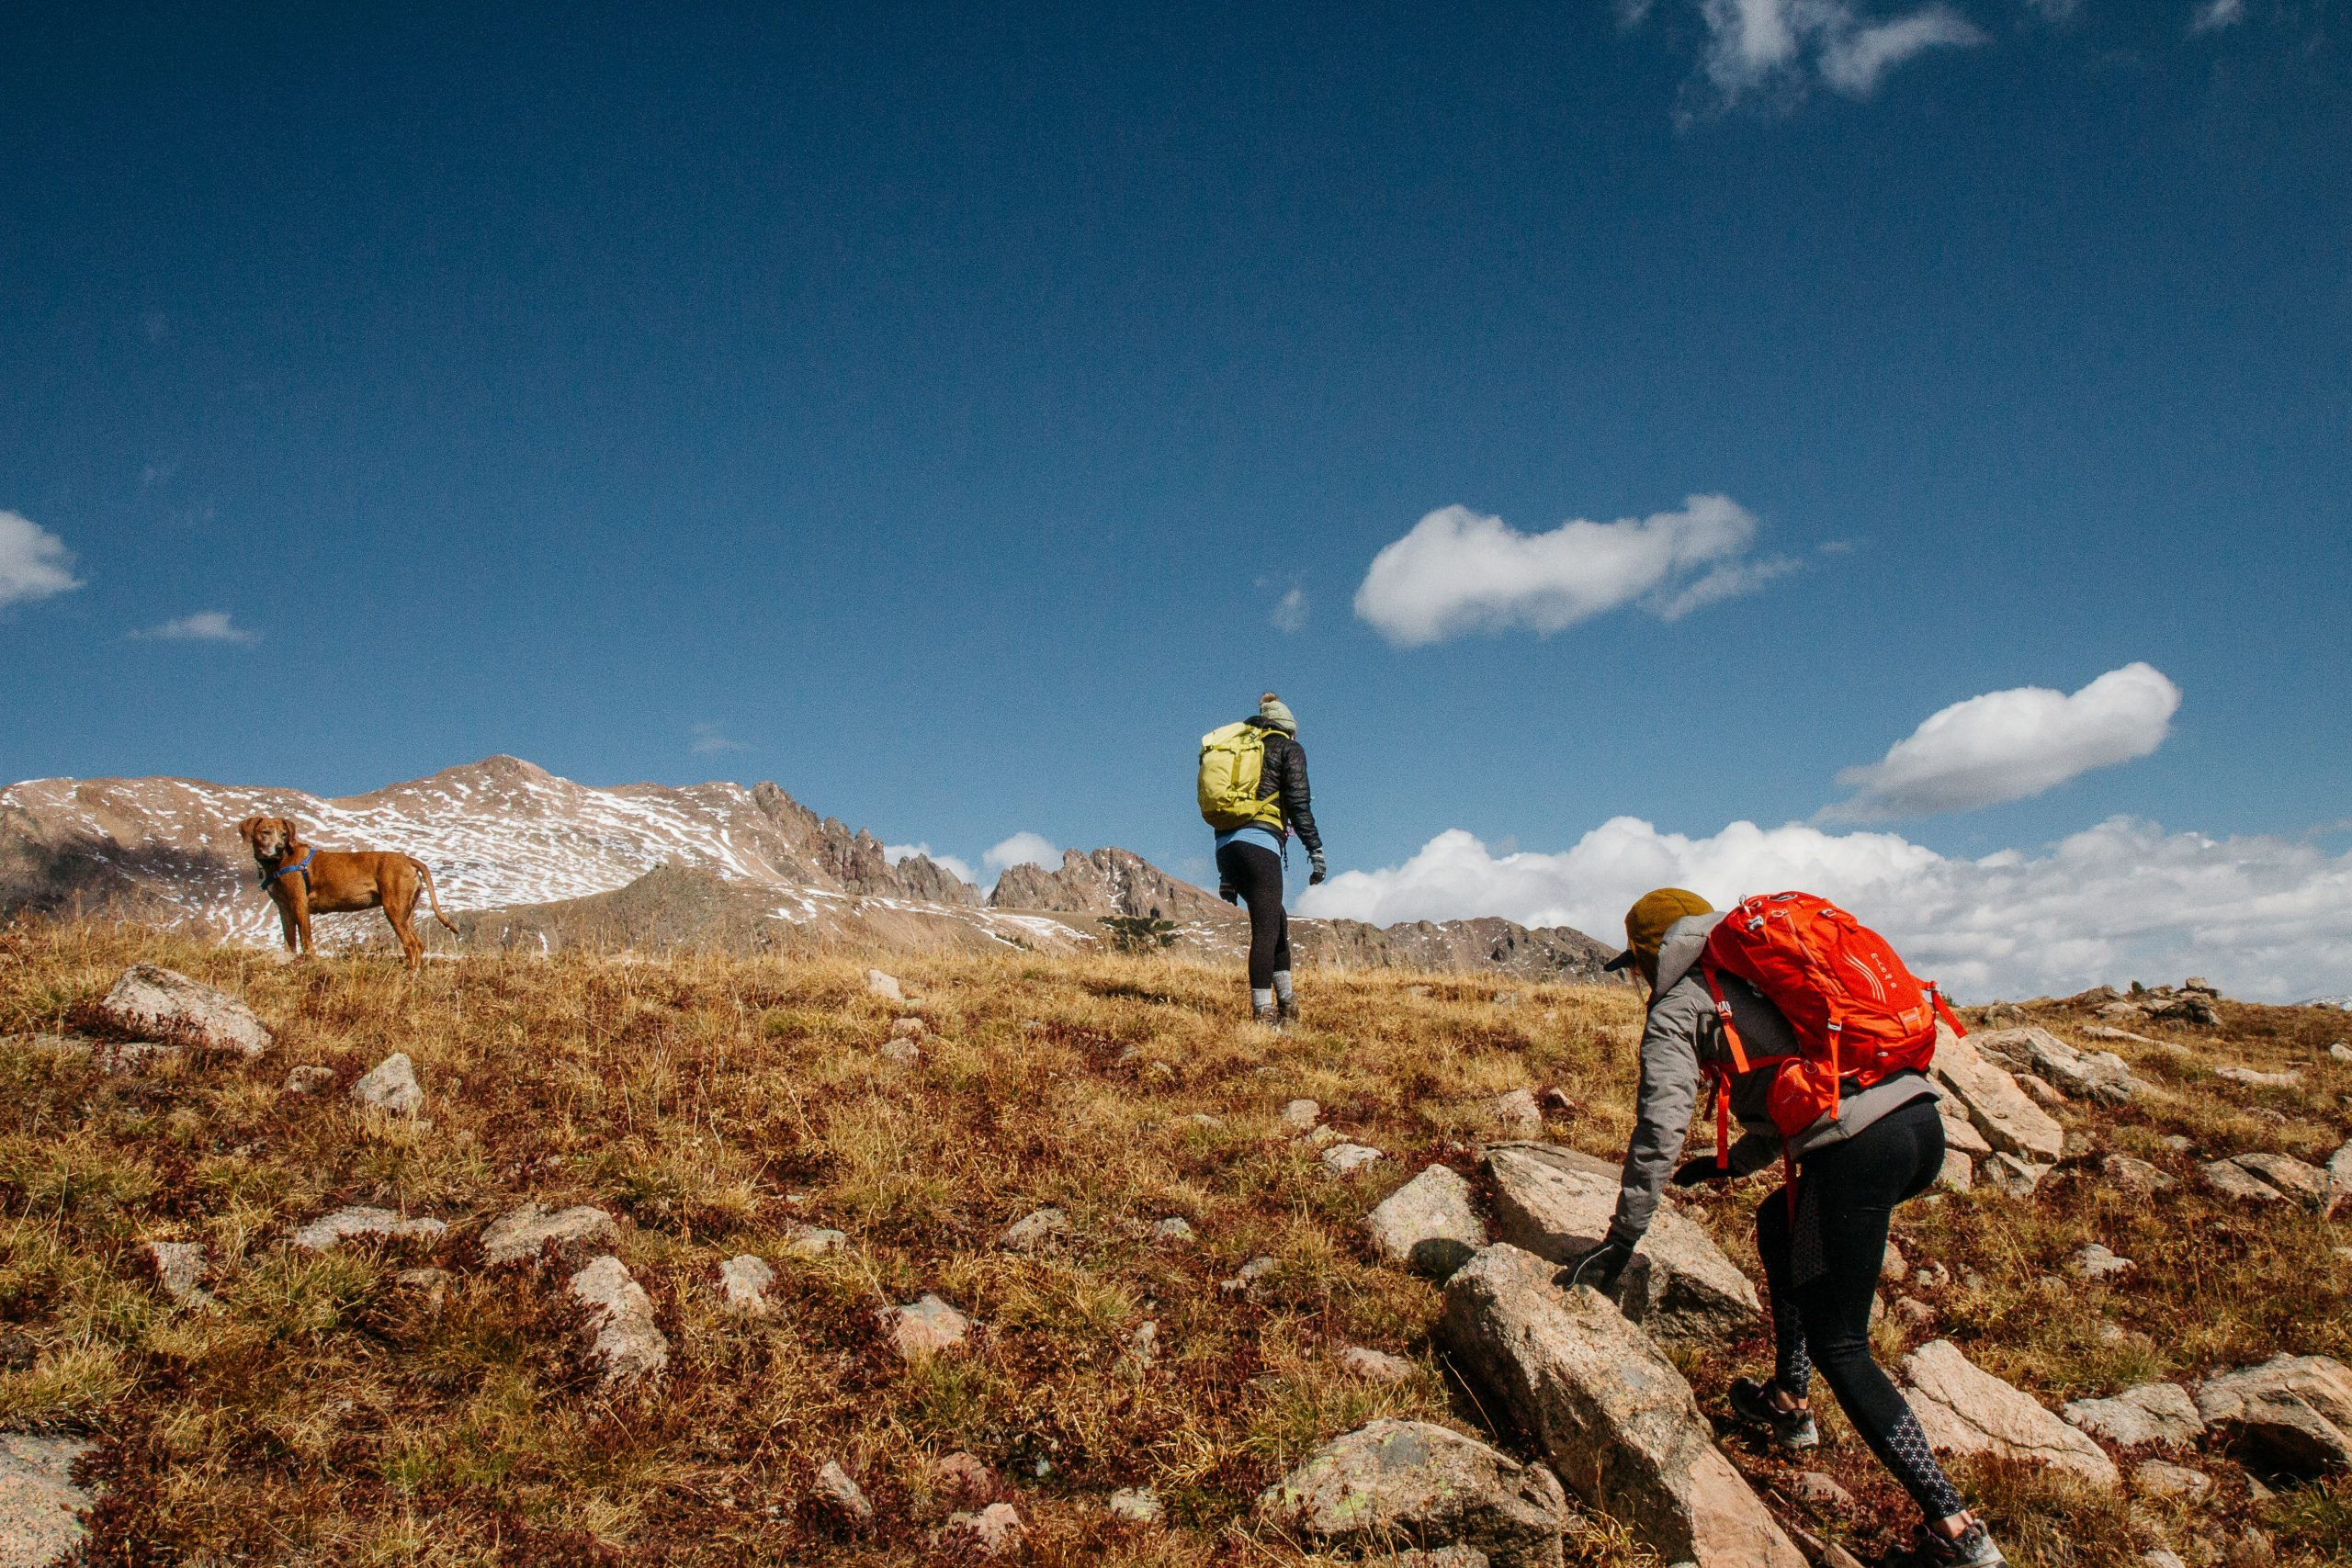 two hikers and brown dog hiking on mountain under blue sky during daytime